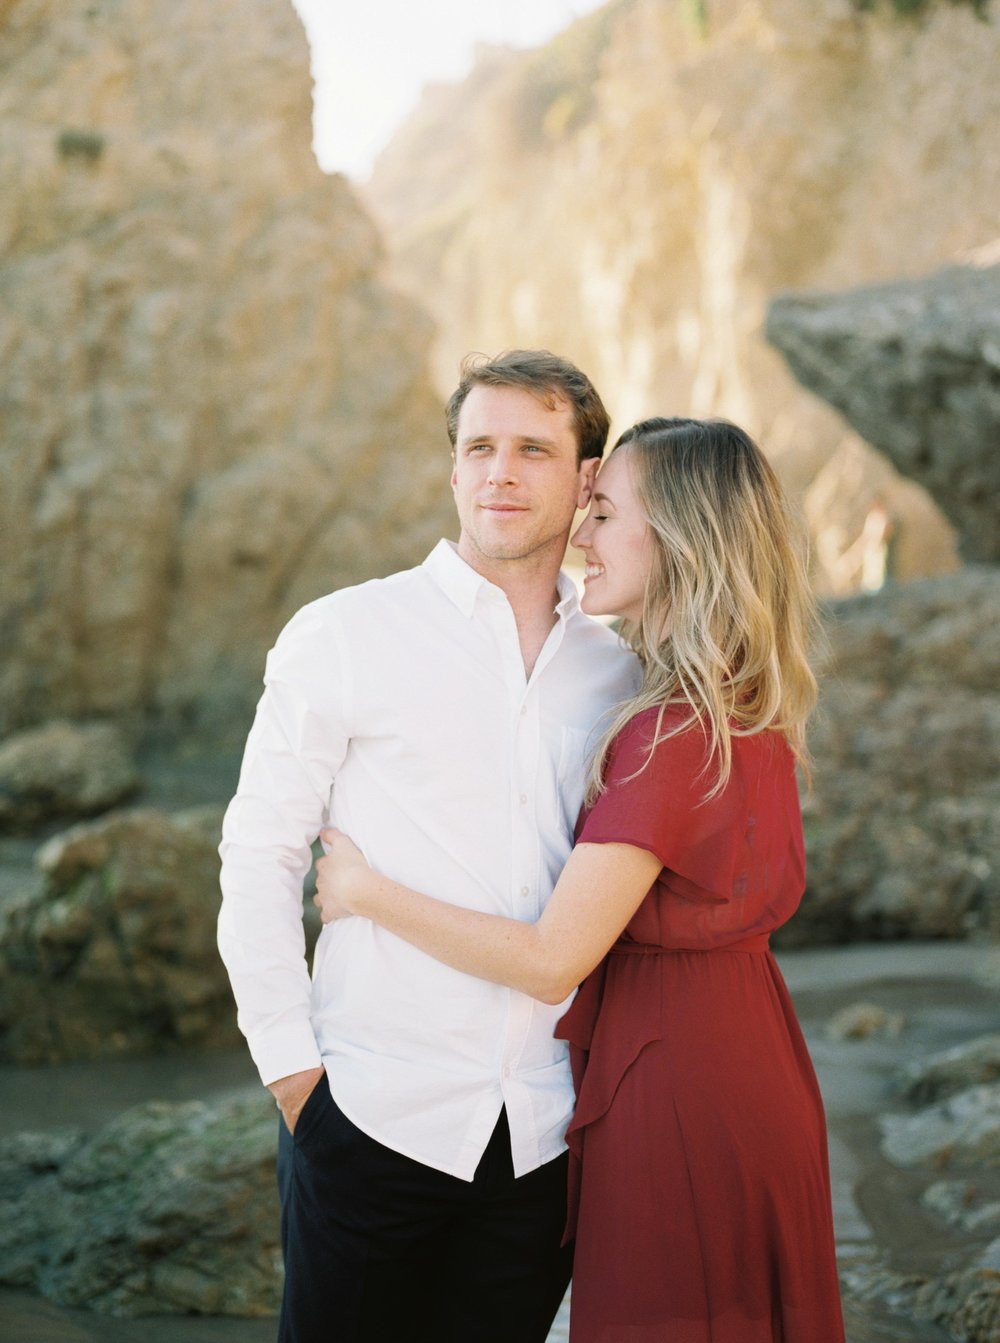 ELMATADOR_FUJI400H_MALIBU_LOSANGELES_PHOTOGRAPHER_WEDDING_ENGAGEMENT_STYLEMEPRETTY_FILM_BEACH_SOCAL_KATELROSEPHOTOGRAPHY_002.jpg